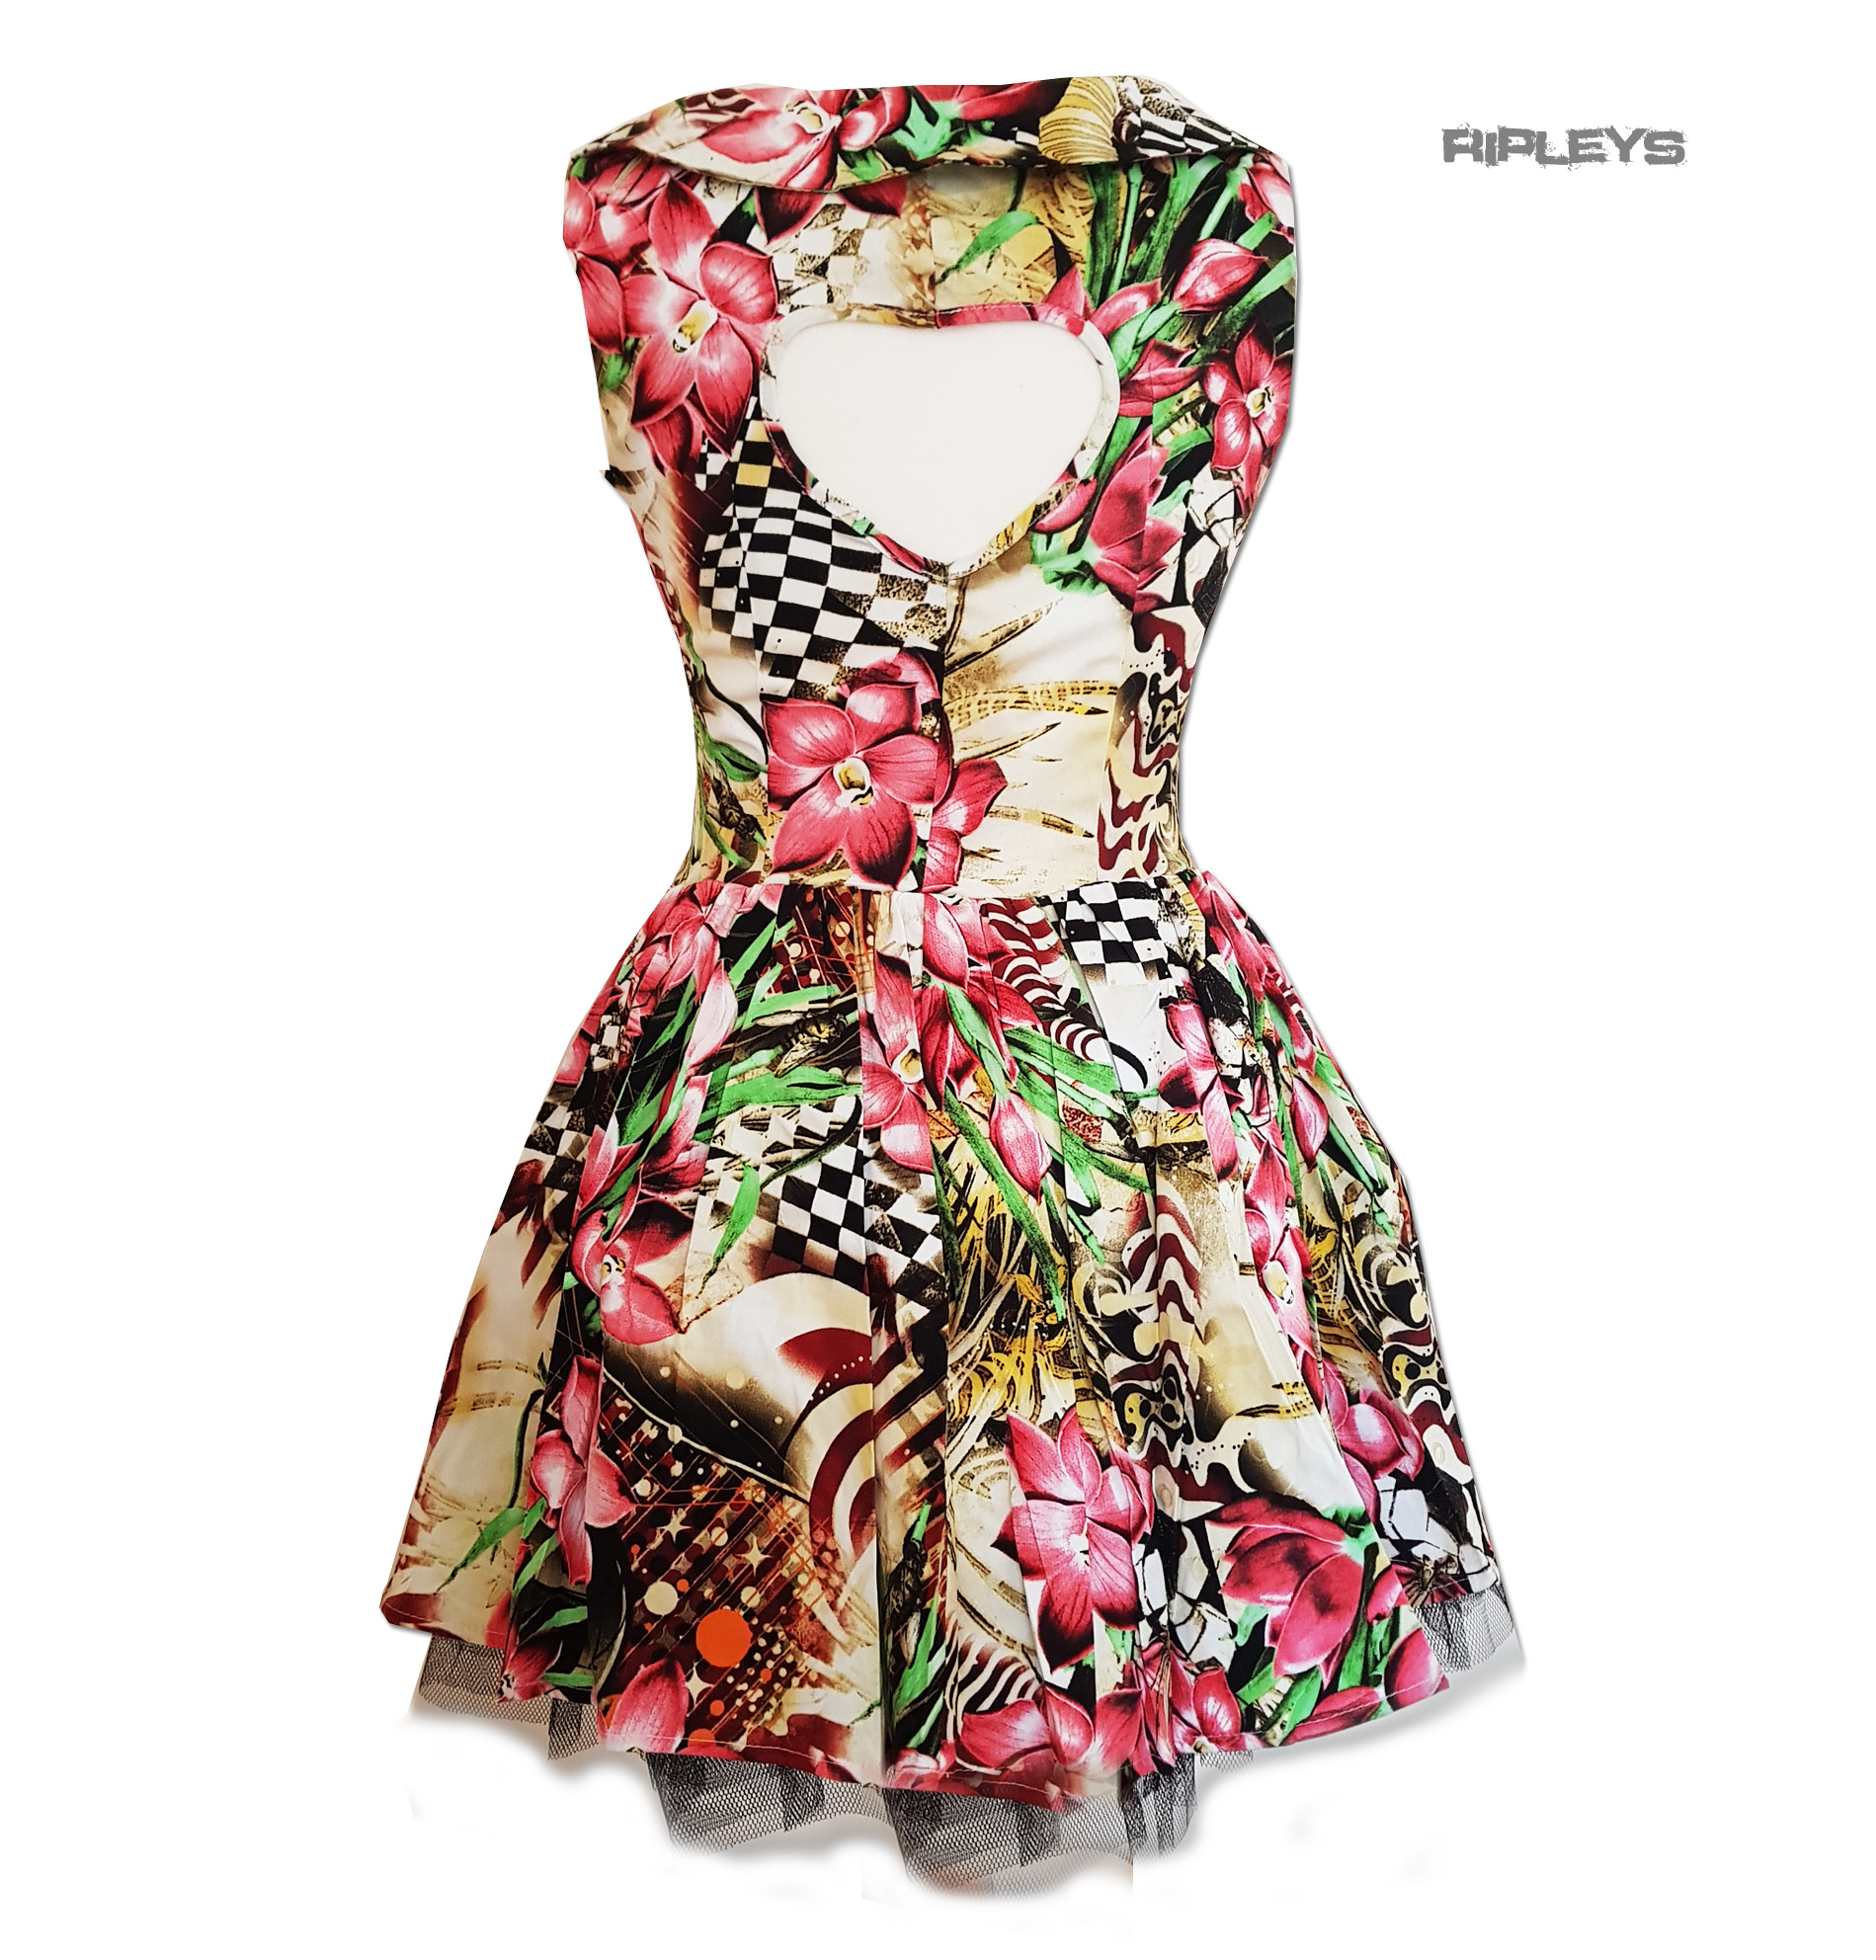 H-amp-R-Hearts-amp-Roses-London-Pink-Mini-Dress-039-Lily-Checkerboard-039-Flowers-All-Sizes thumbnail 16